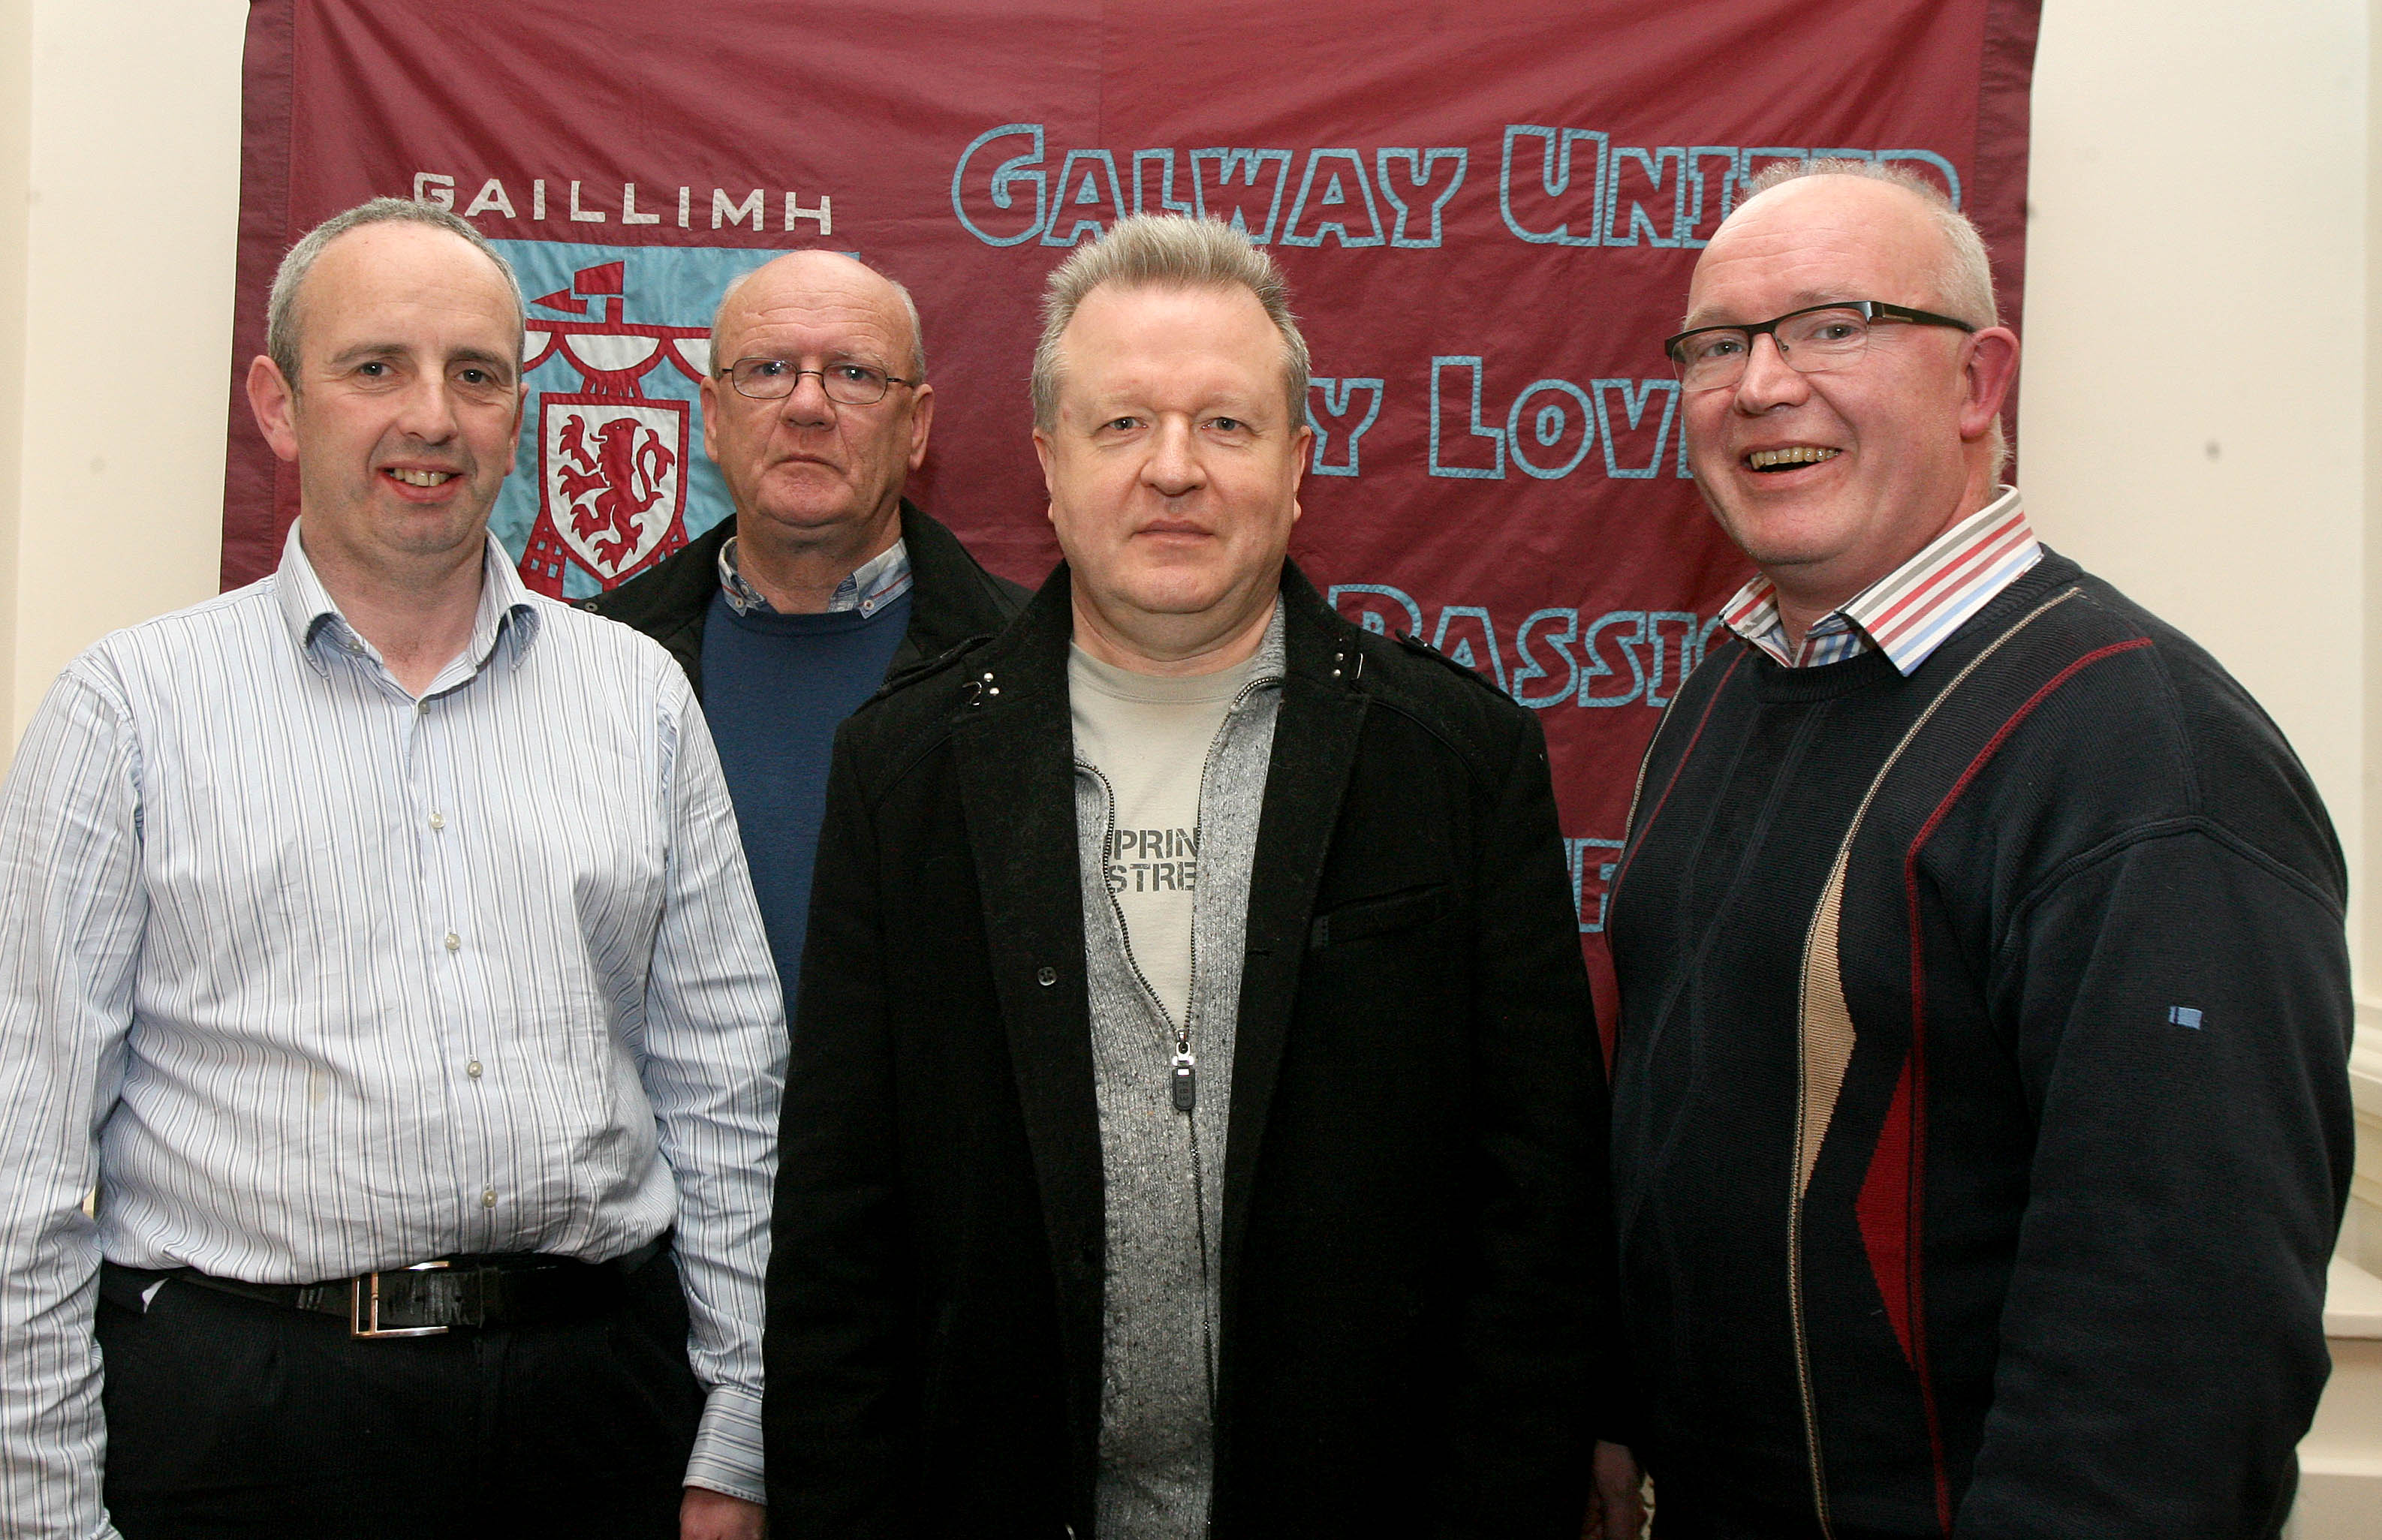 Ronan Coleman, Jim McDermott, Tommy Shields and Seán Dunleavy, all from the Galway United Supporters Trust, at the launch of the Galway Soccer Co-op supporting Galway United at Hotel Meyrick.